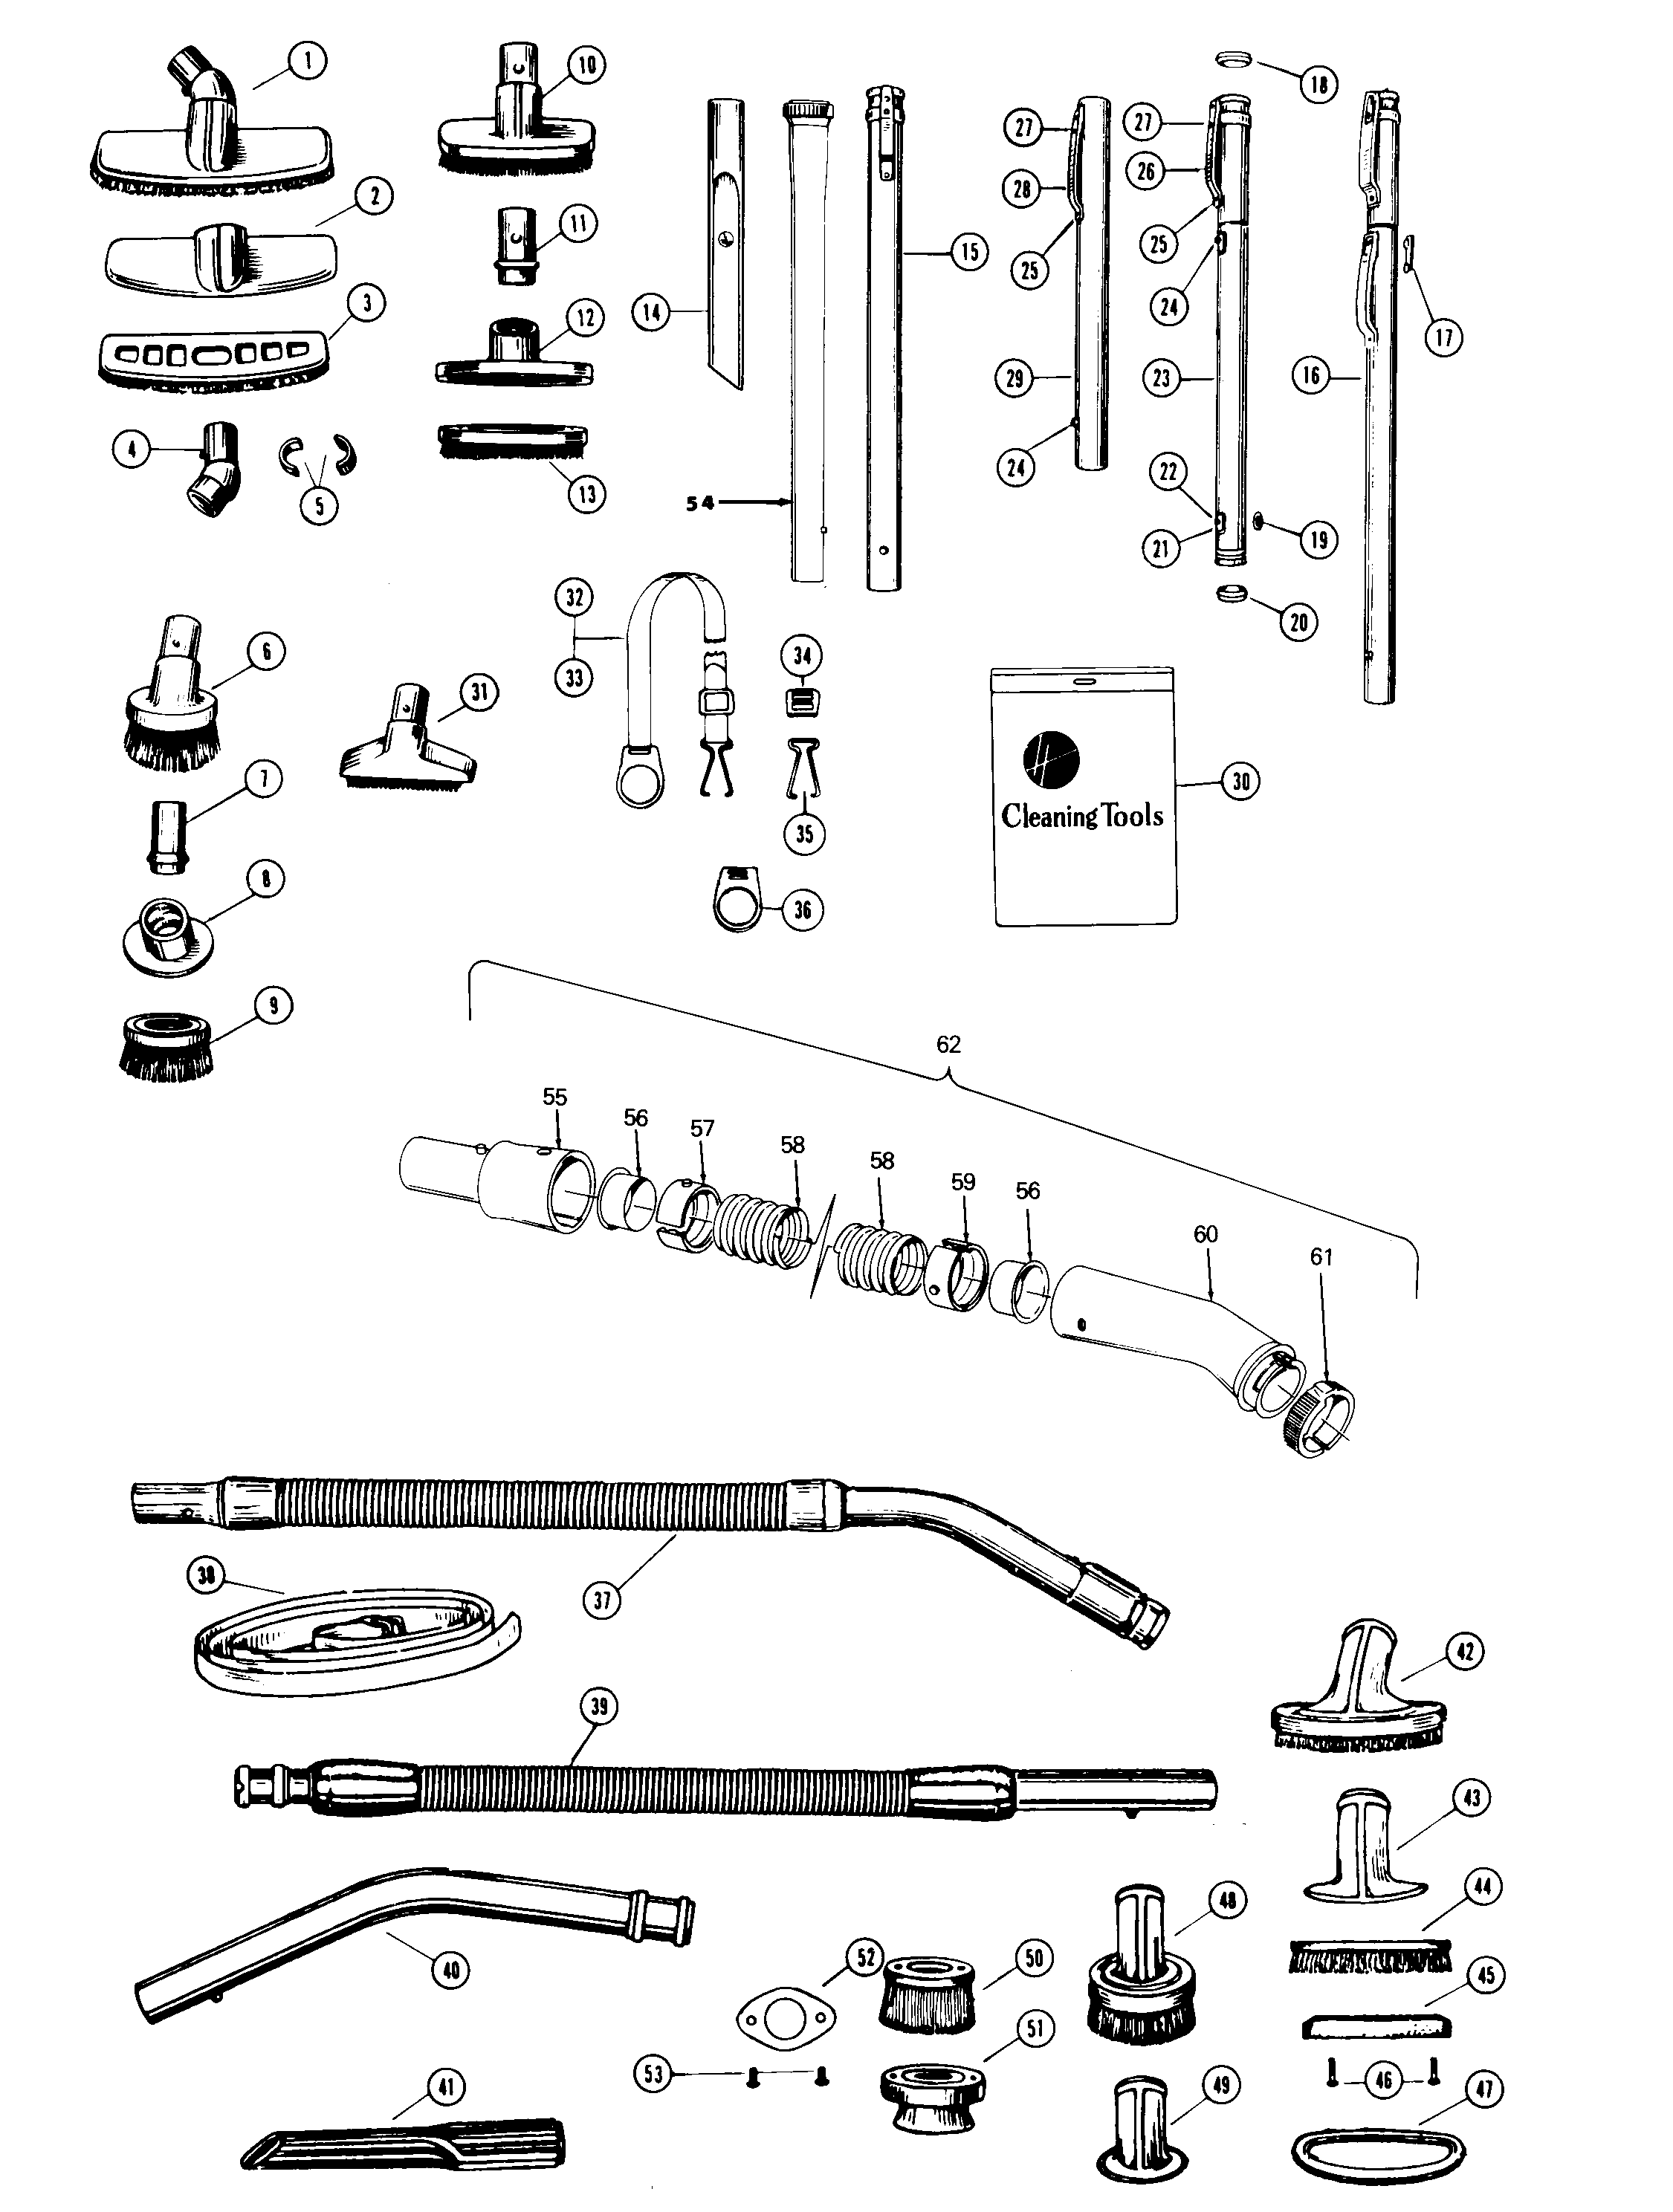 Hoover 2900 hose, cleaningtools diagram